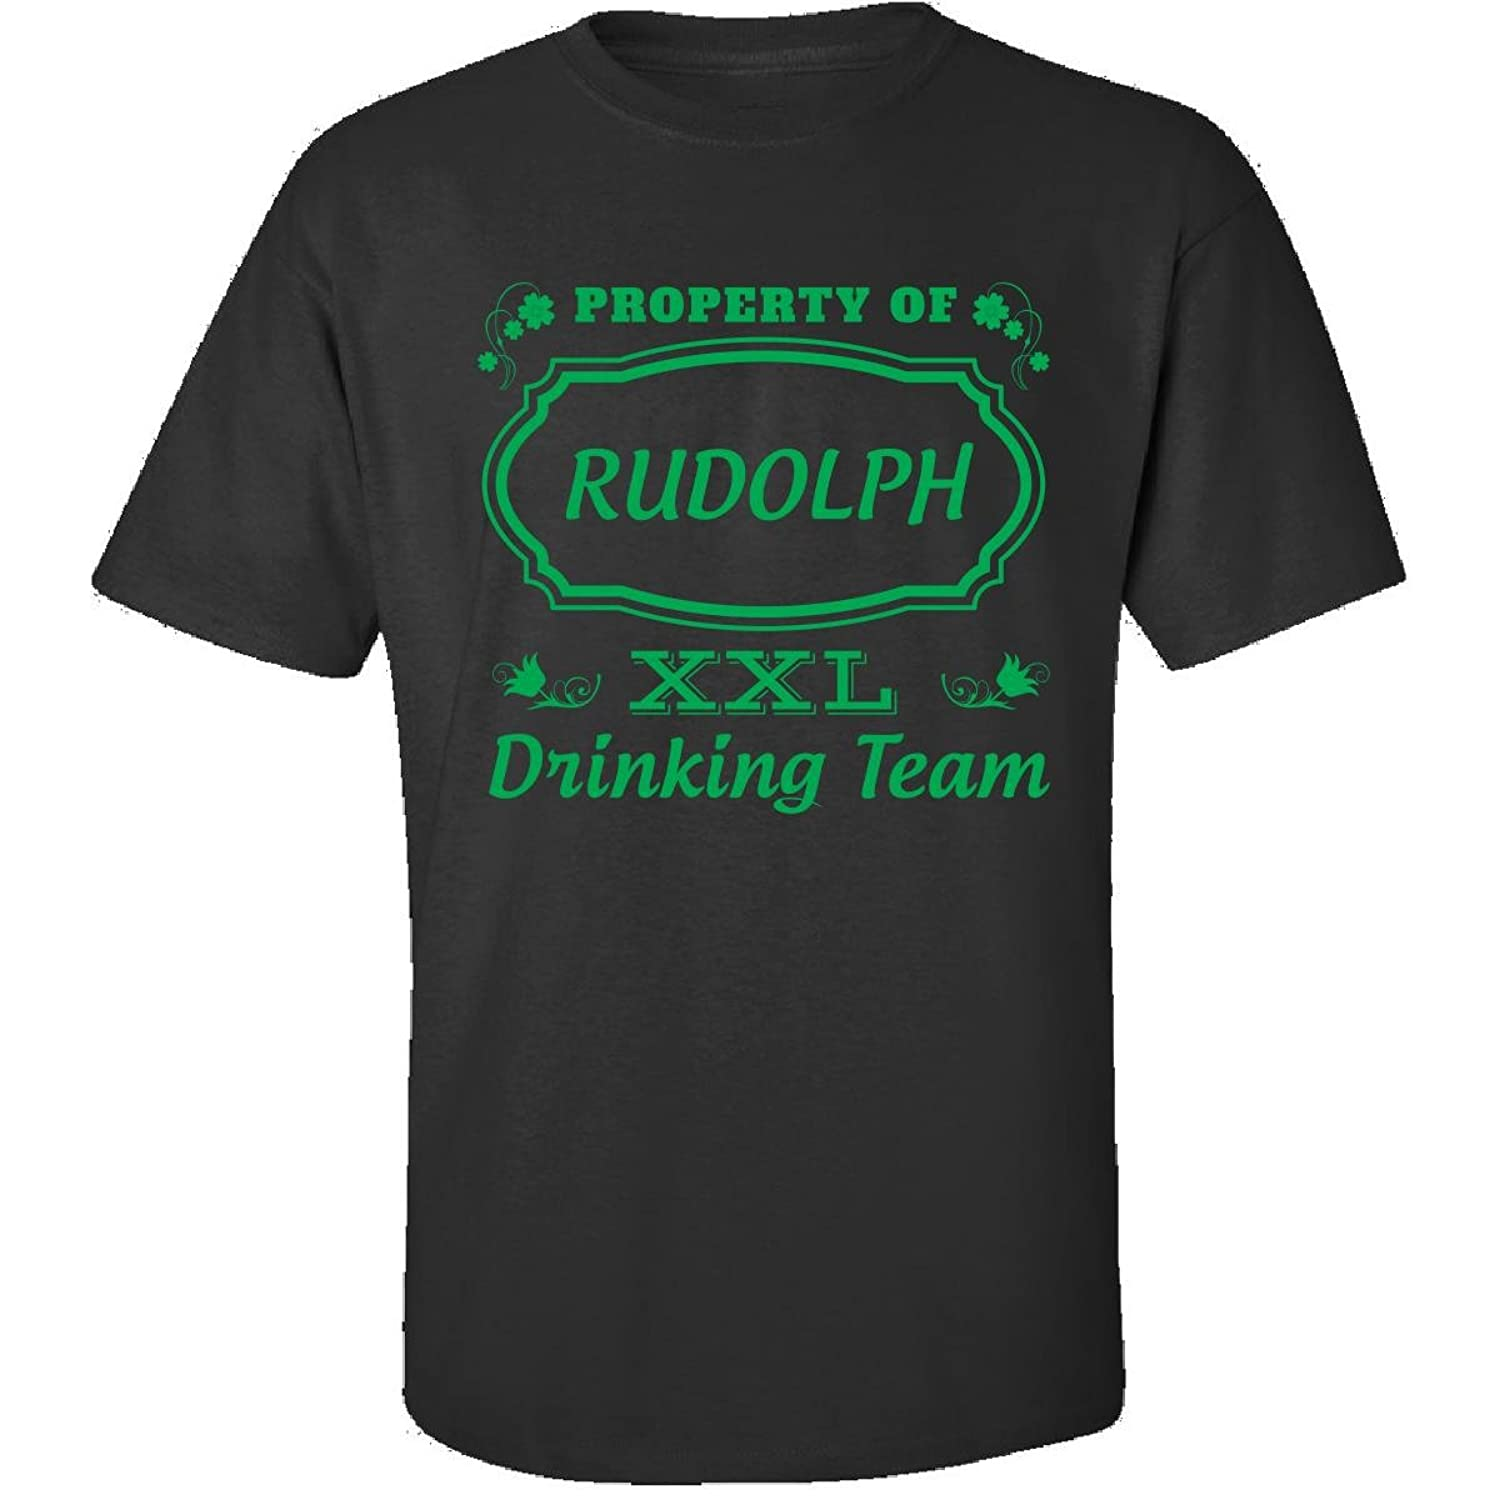 Property Of Rudolph St Patrick Day Beer Drinking Team - Adult Shirt